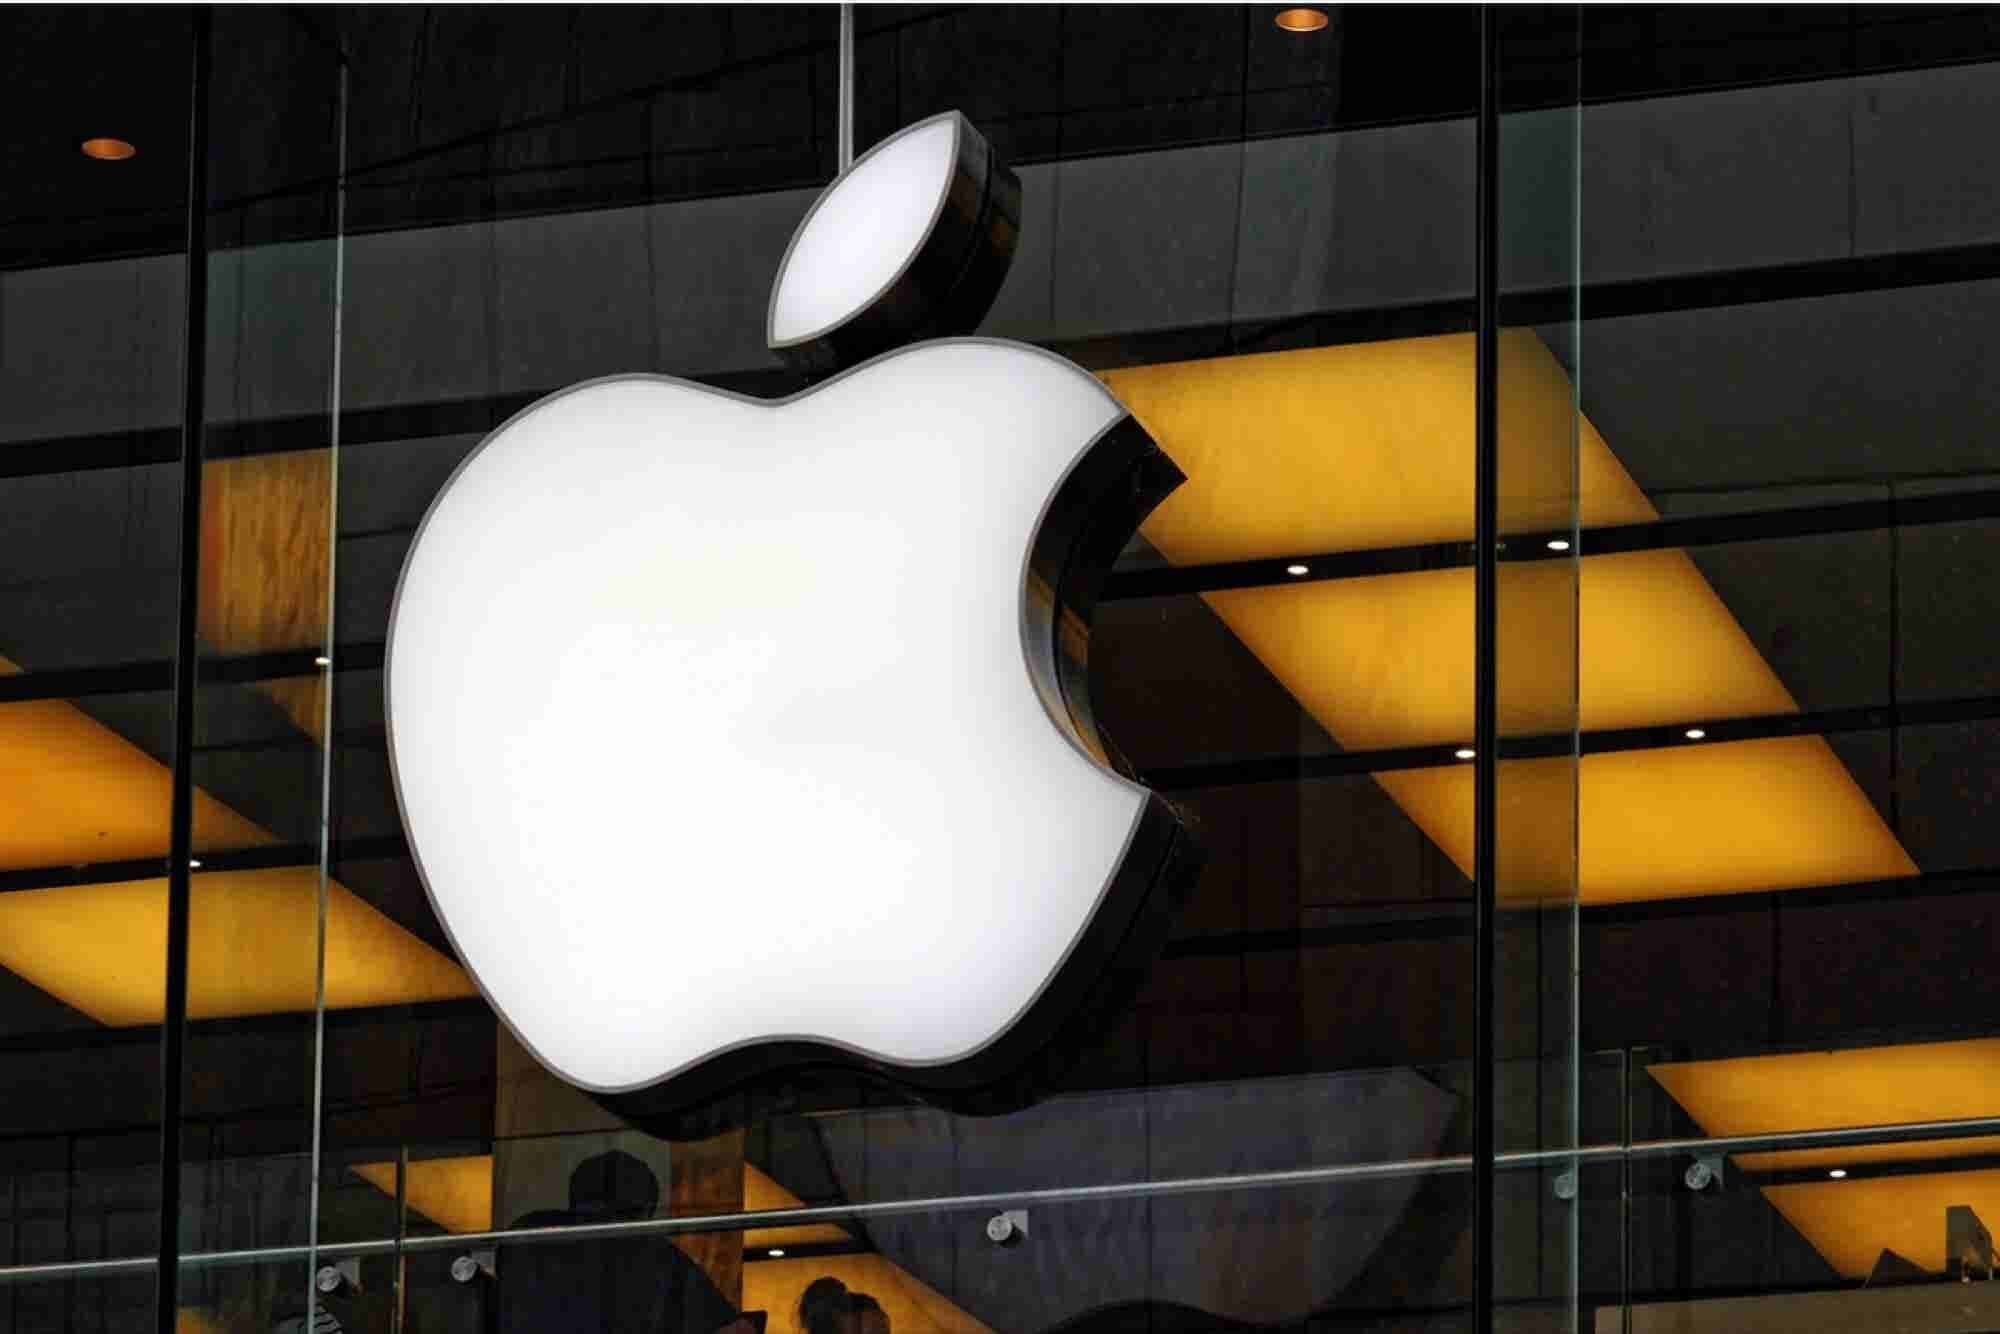 Apple Gears Up for iCar -- Weekly News